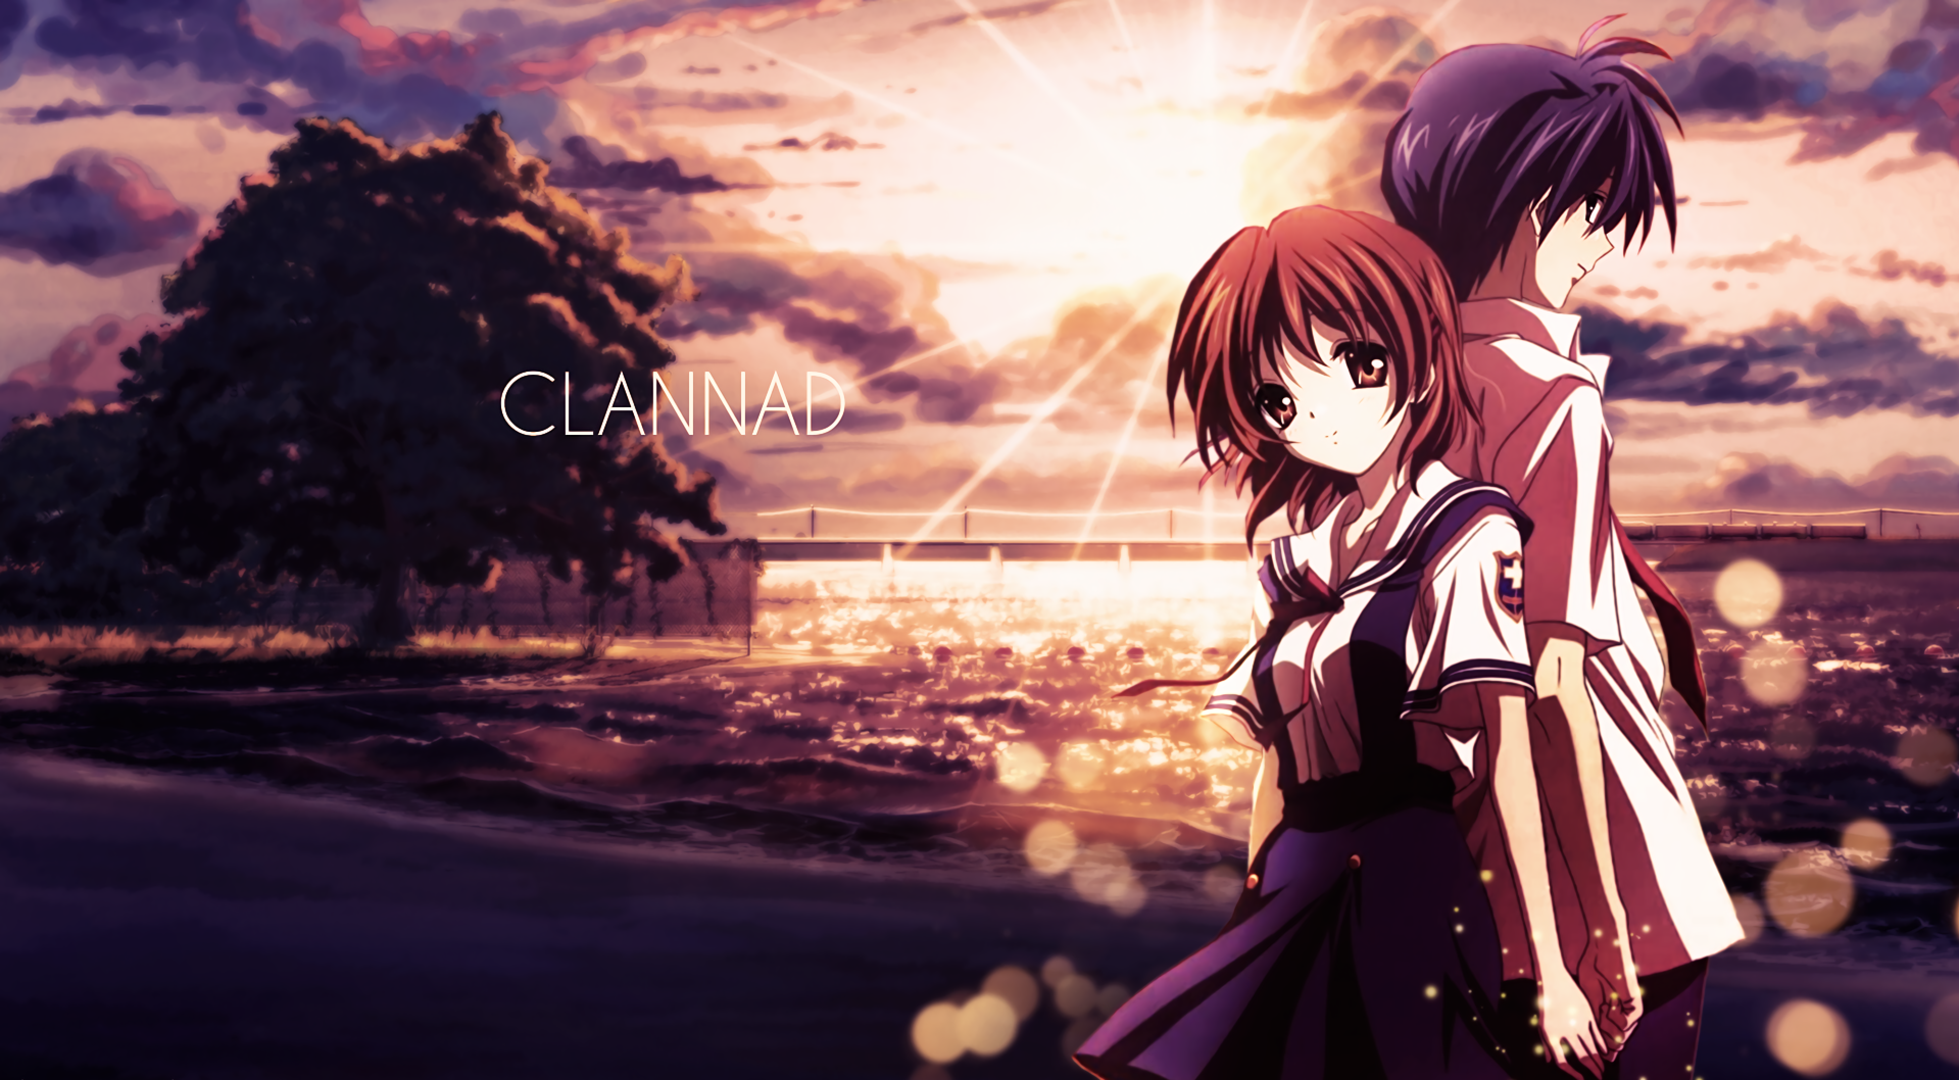 Clannad Wallpapers Backgrounds 1959x1080